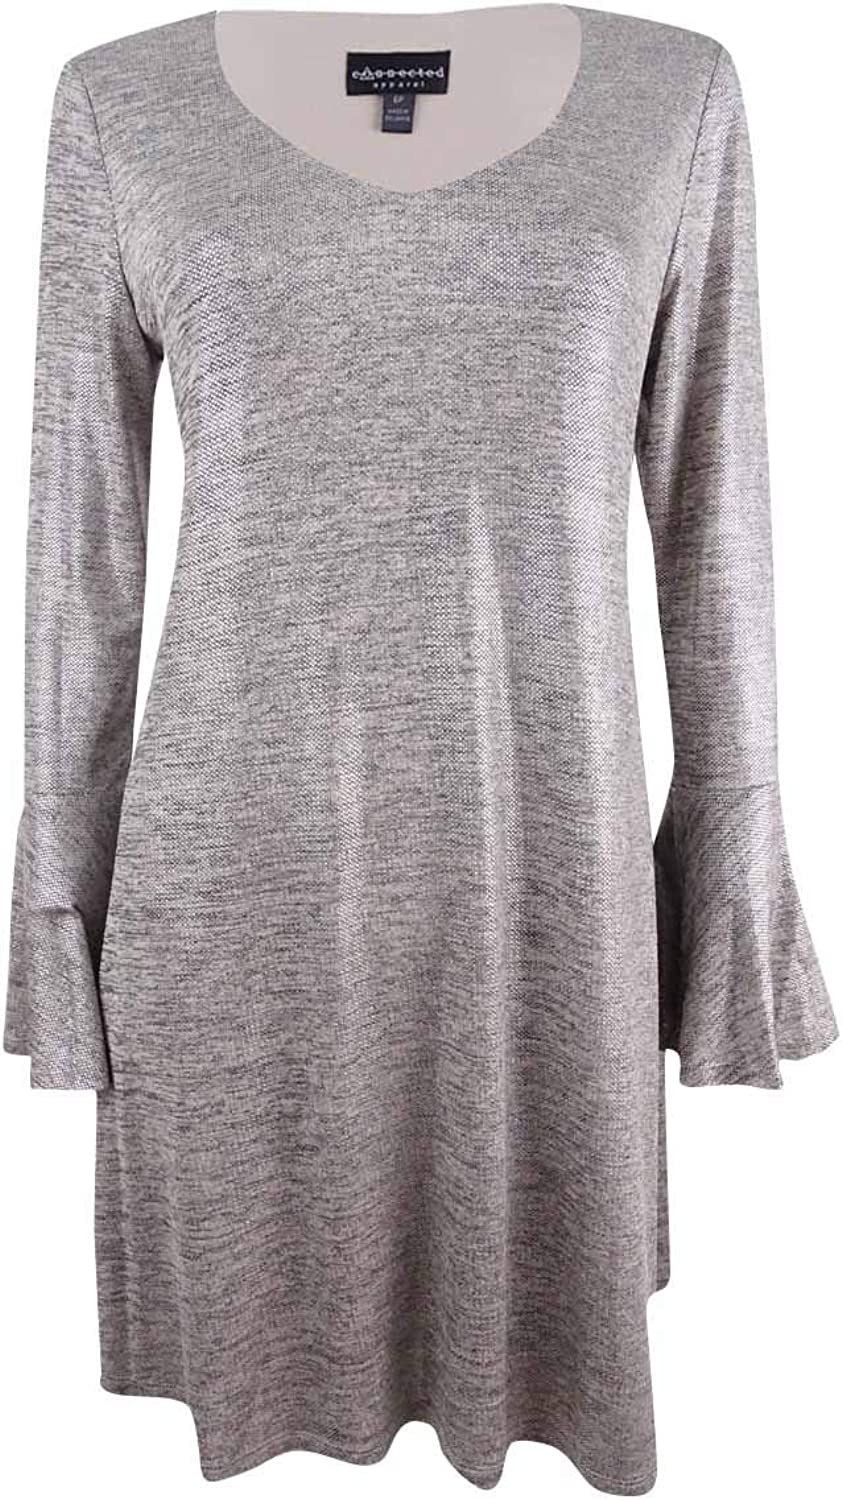 Connected Apparel Womens Petites Metallic Textured Party Dress Taupe 4P